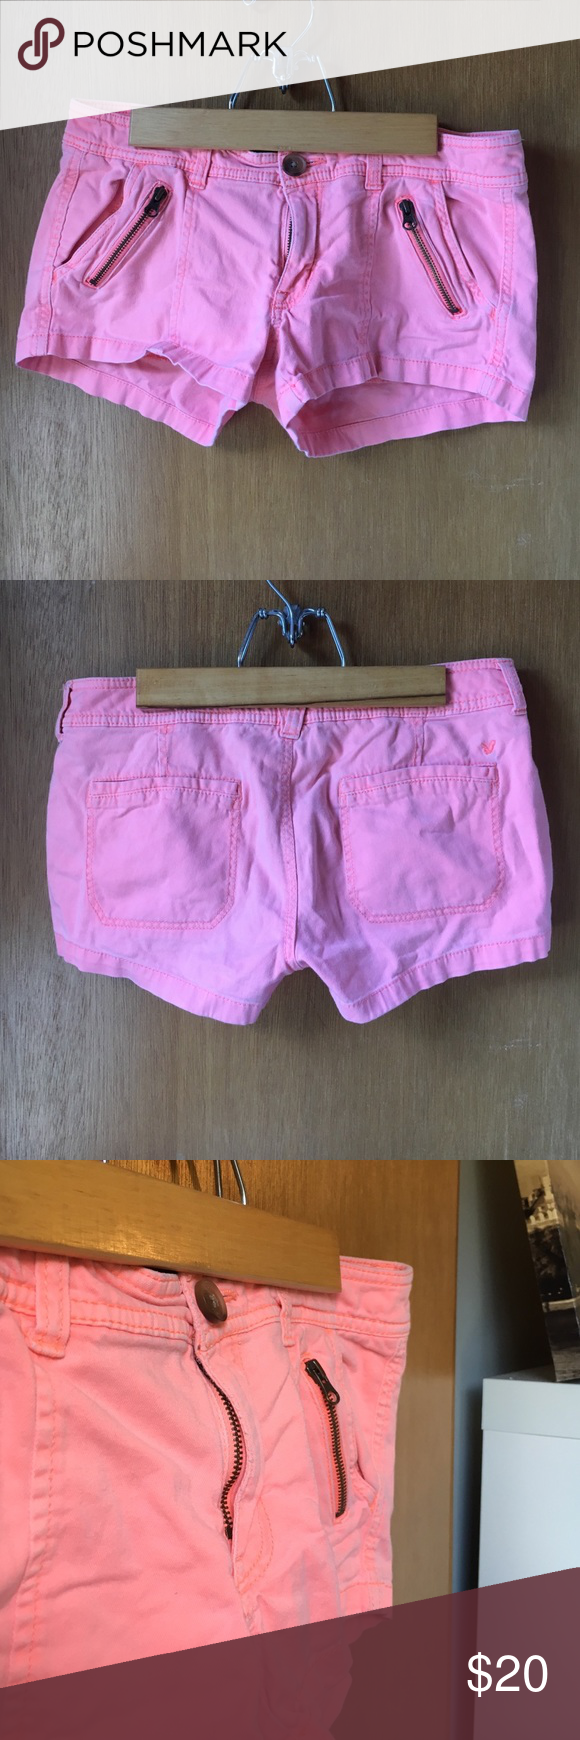 Bright coral shorts Coral shorts with zipper front pockets! The last picture is the closest to the actual color of the shorts American Eagle Outfitters Shorts